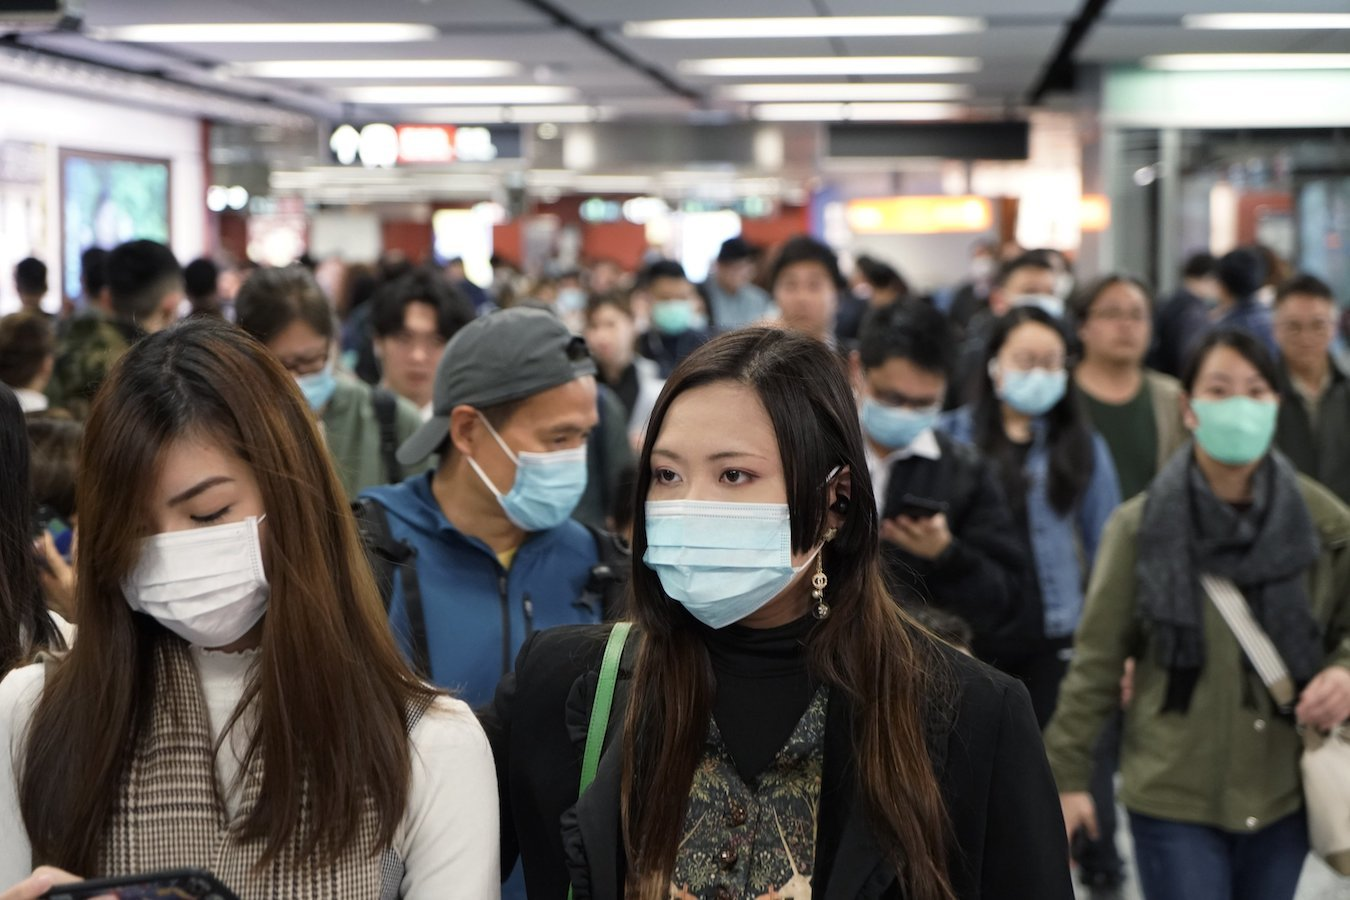 Hong Kong subway passengers wear surgical masks during the coronavirus outbreak. Though it's a global health emergency, it's not yet a pandemic.(Associated Press)